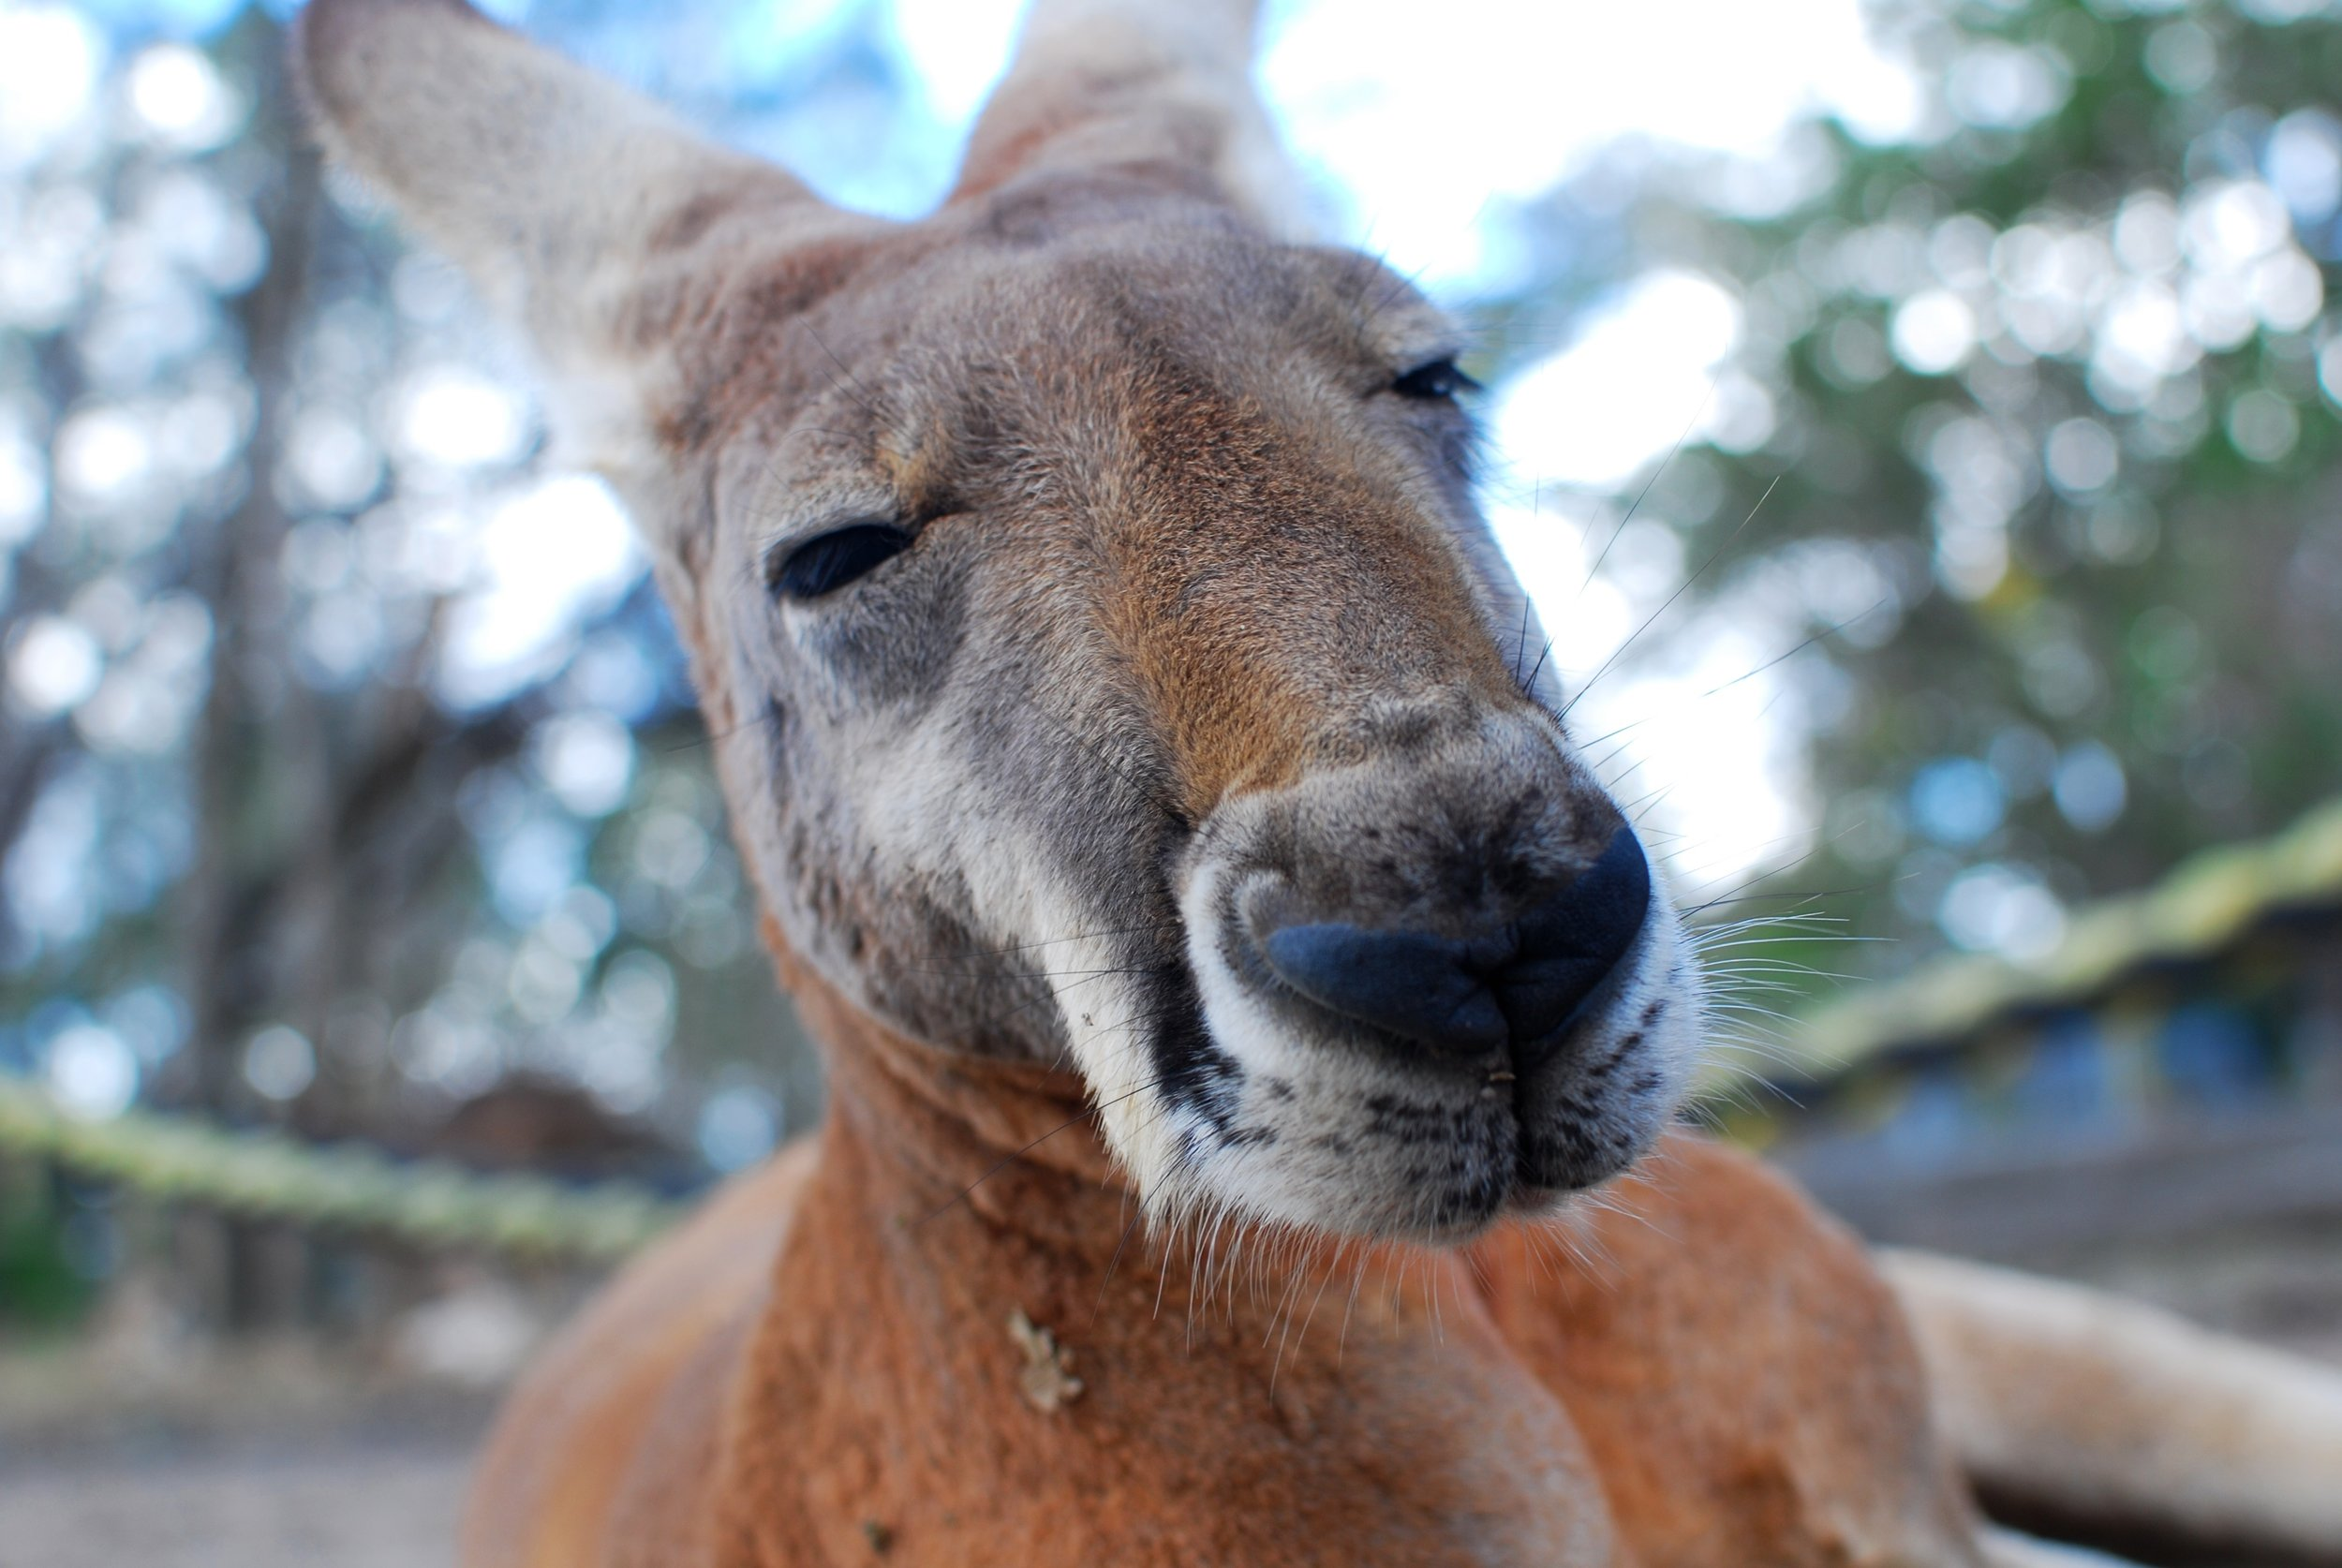 I wasn't sure what picture to use for this so here's a roo because that's Aussie, right?